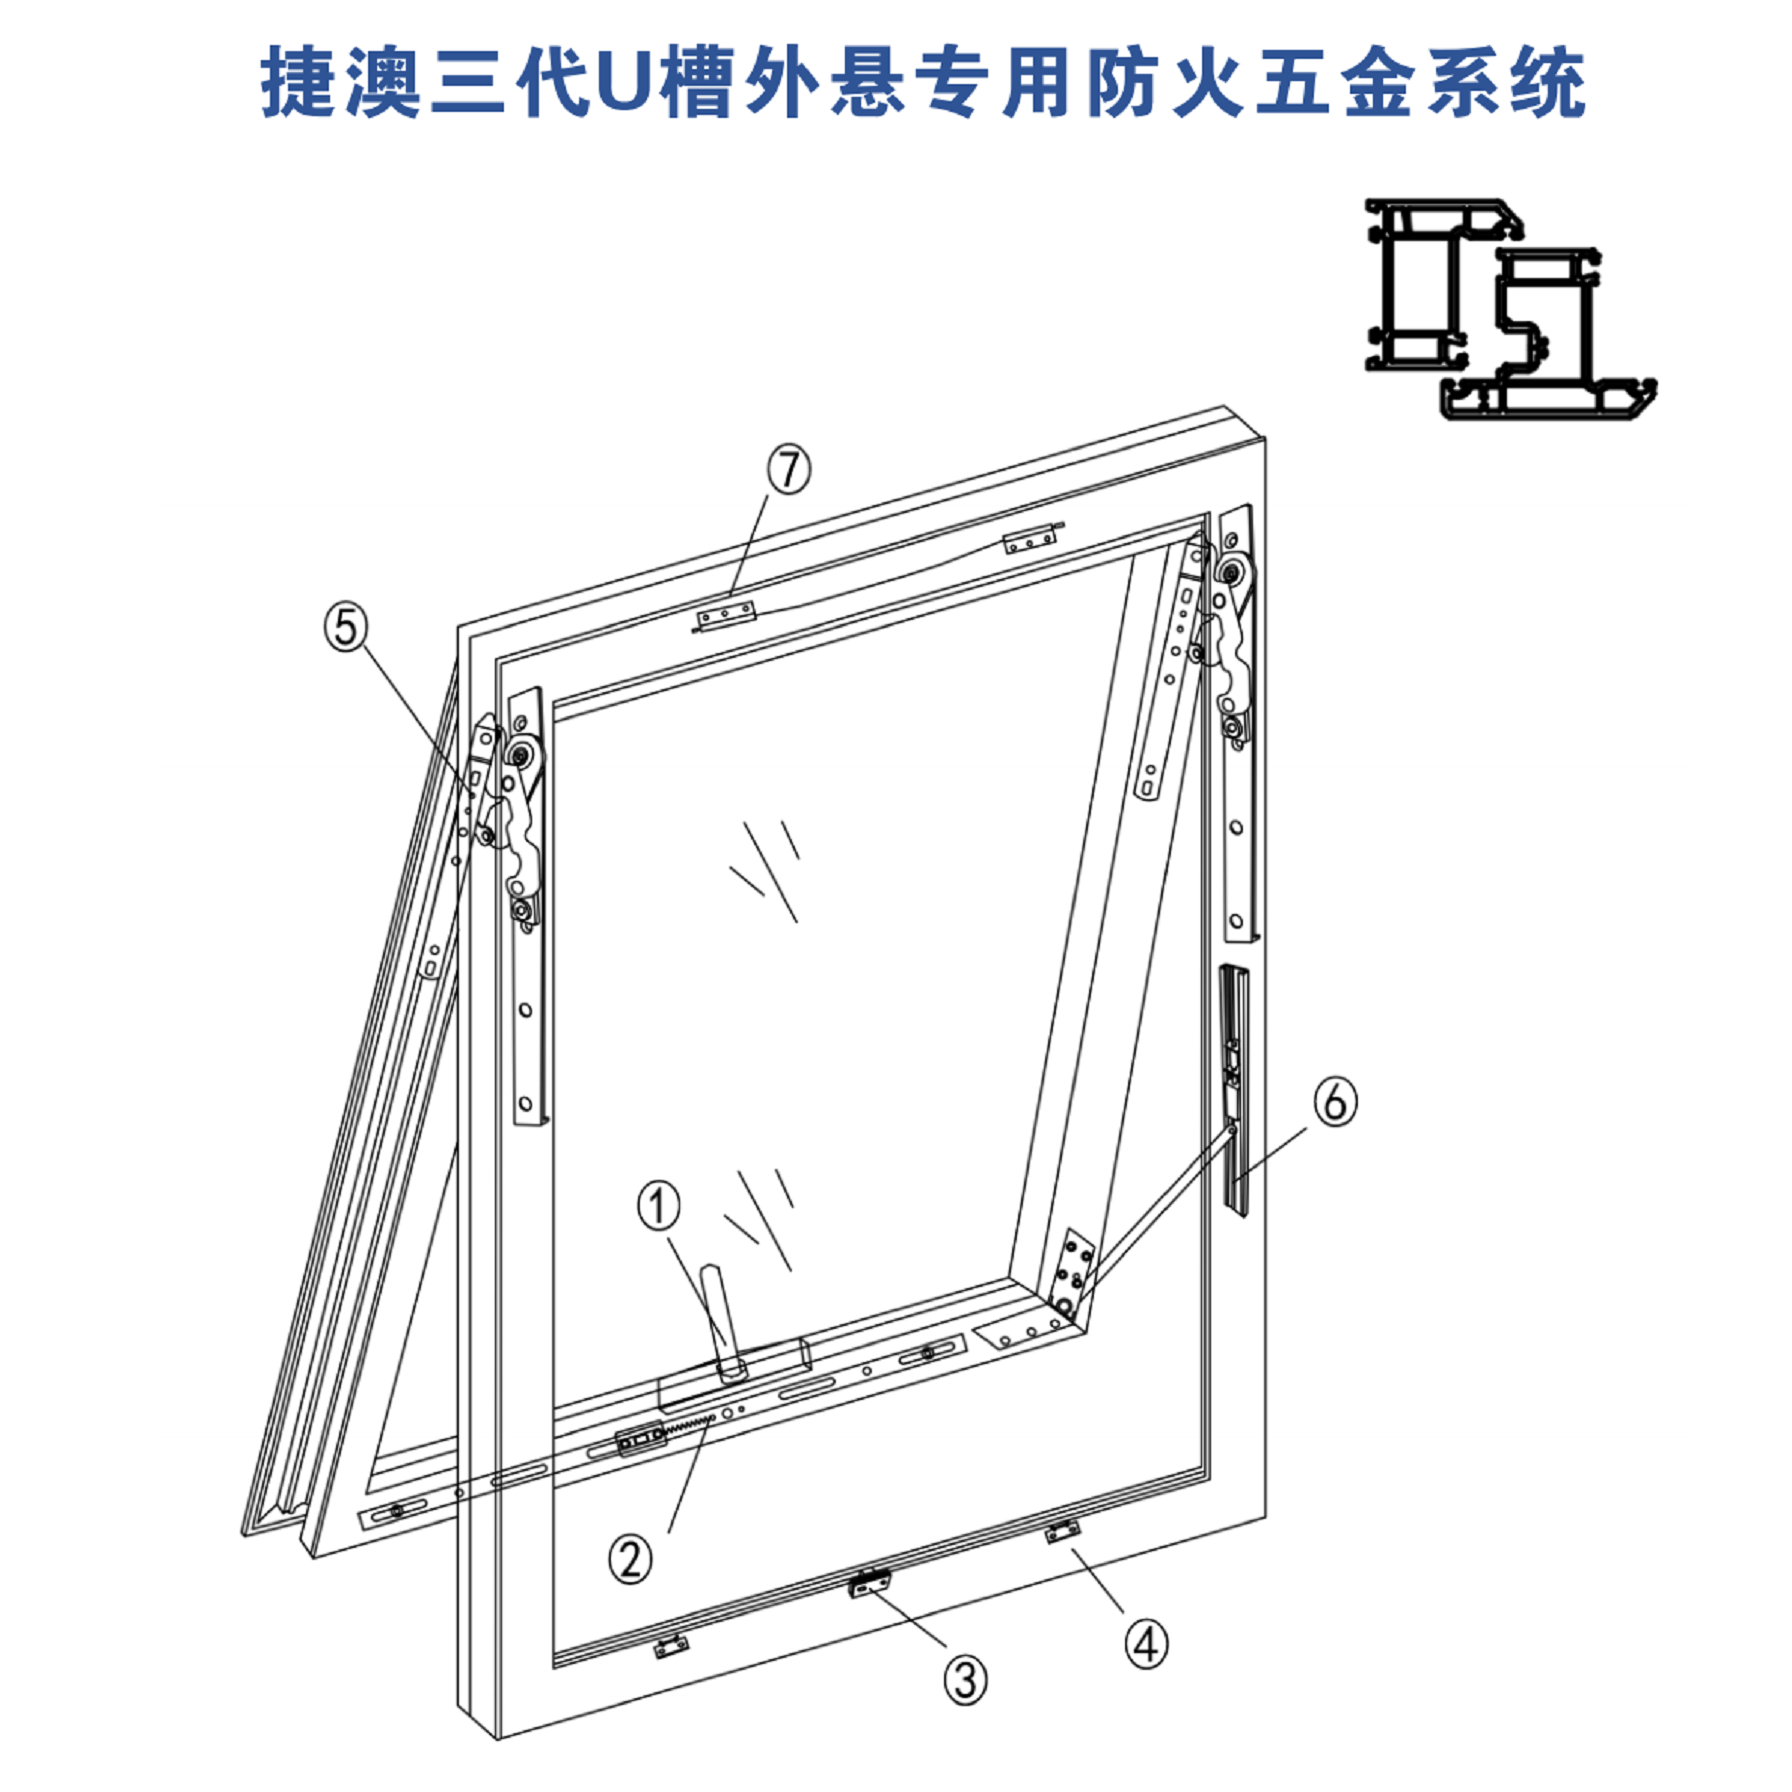 Special fireproof hardware system for external suspension of U trough in Jieao